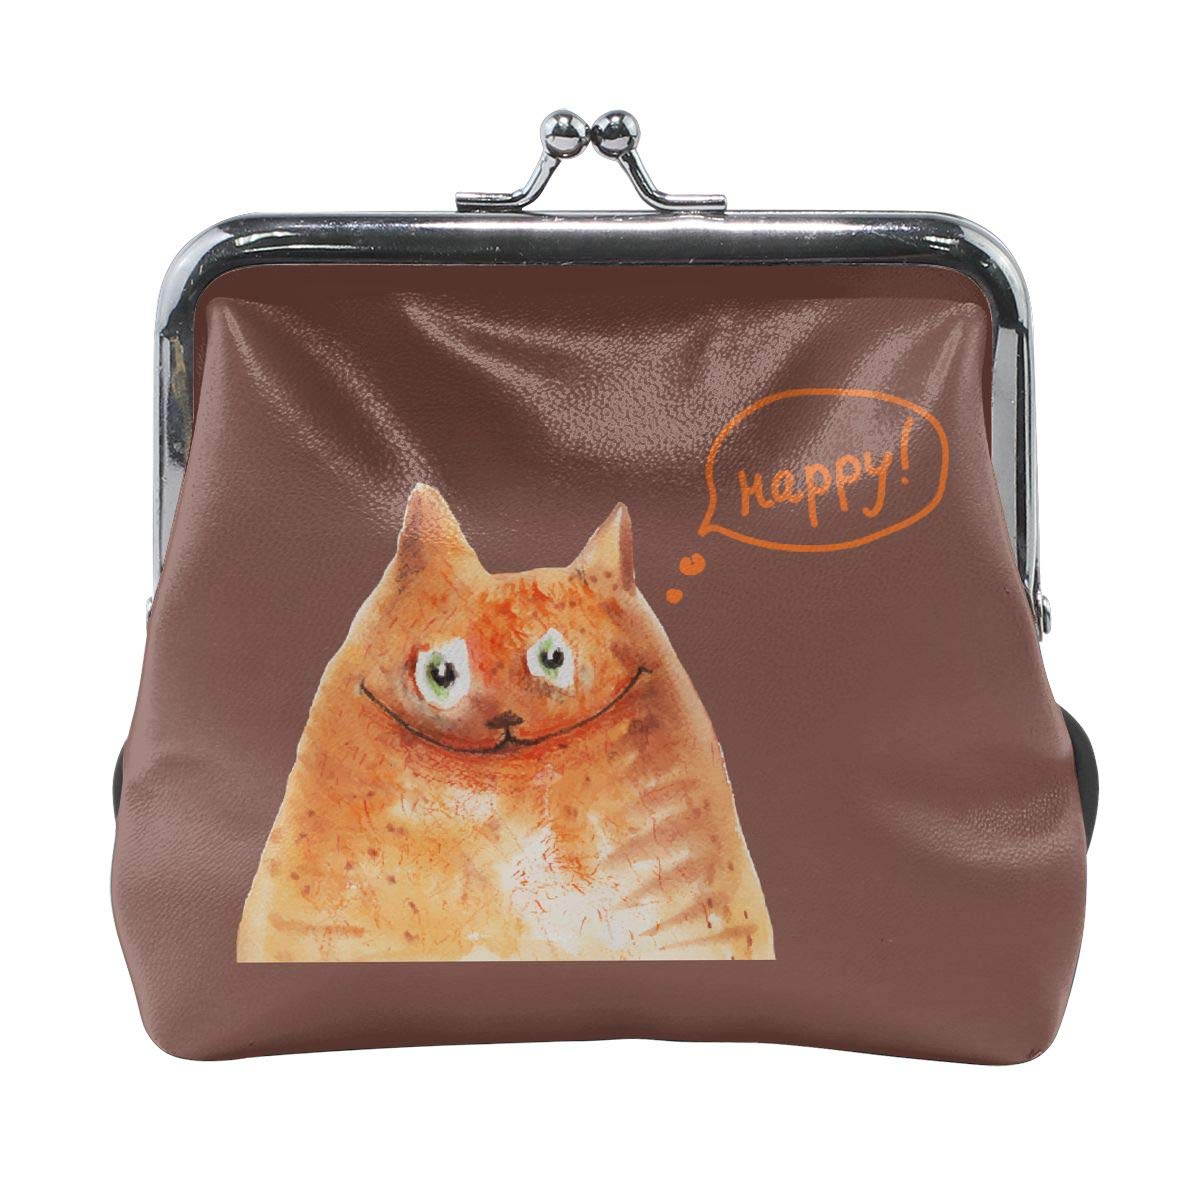 Fashion Happy Cat Credit Cards Buckle Coin Purse For Womens